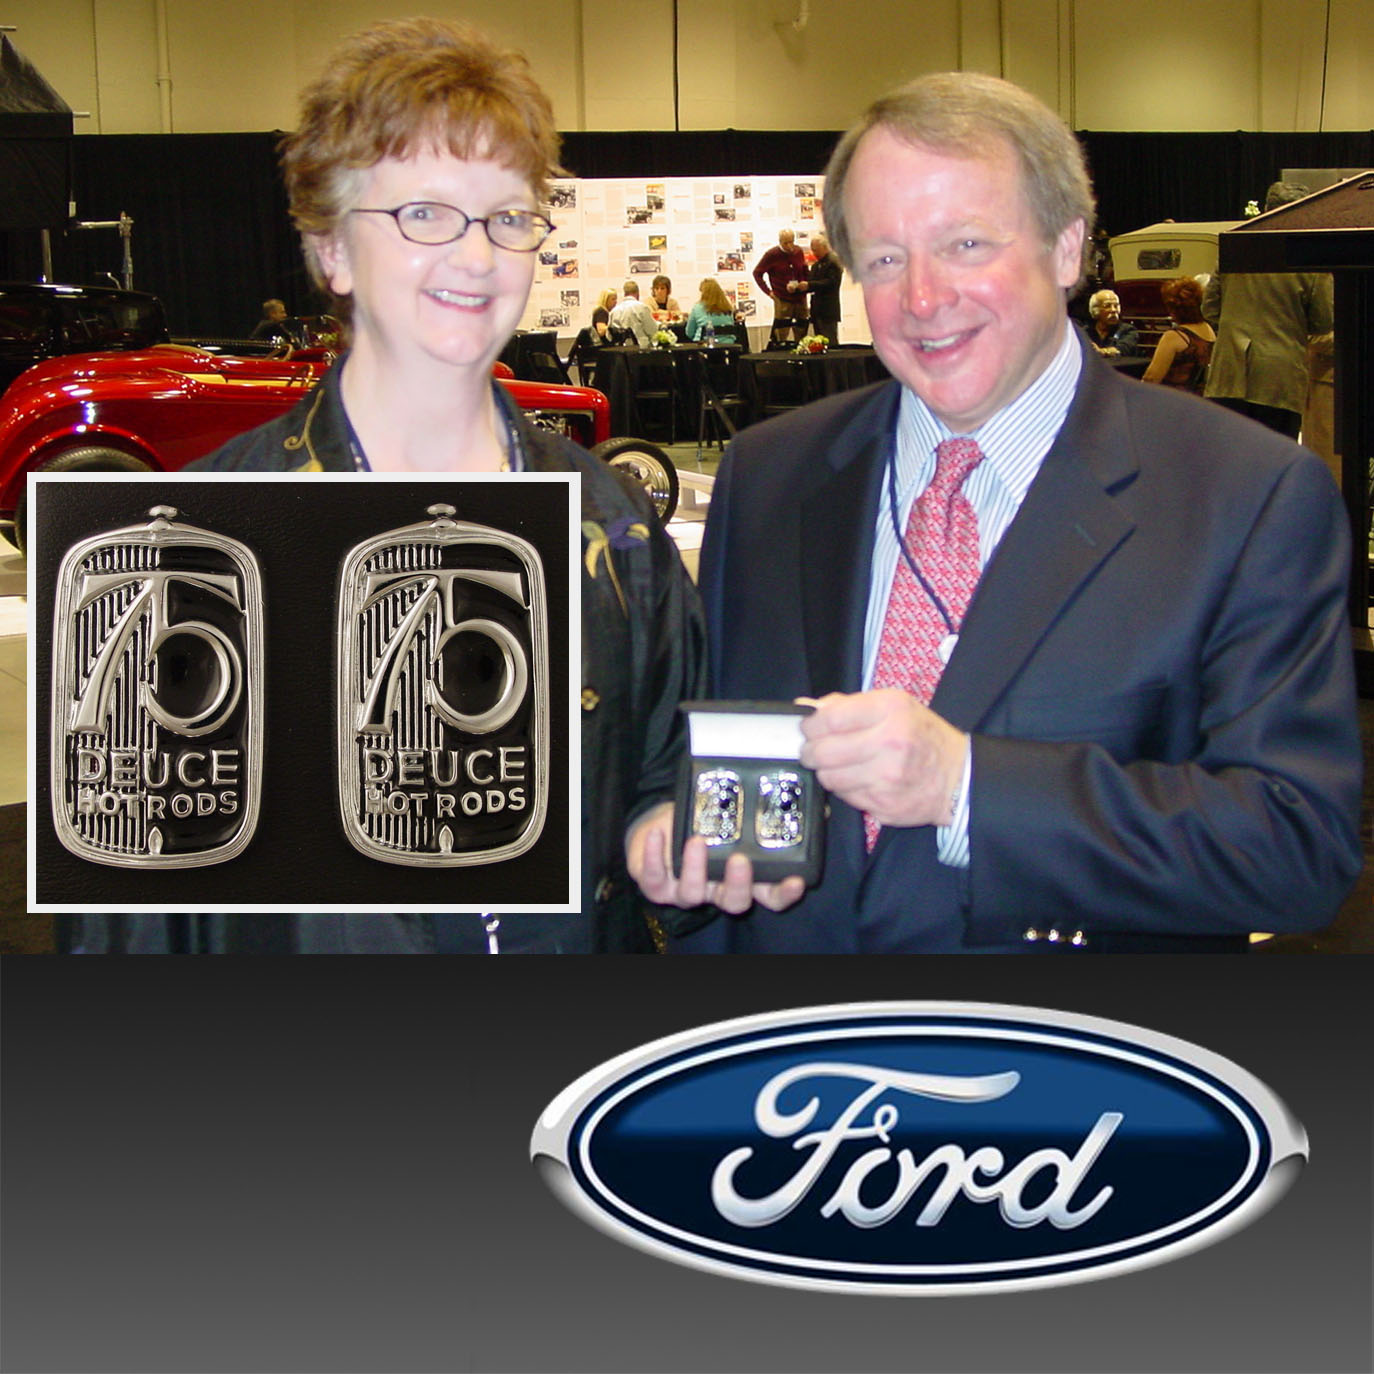 Edsel_Ford_75th_Anniversary_1932_Ford